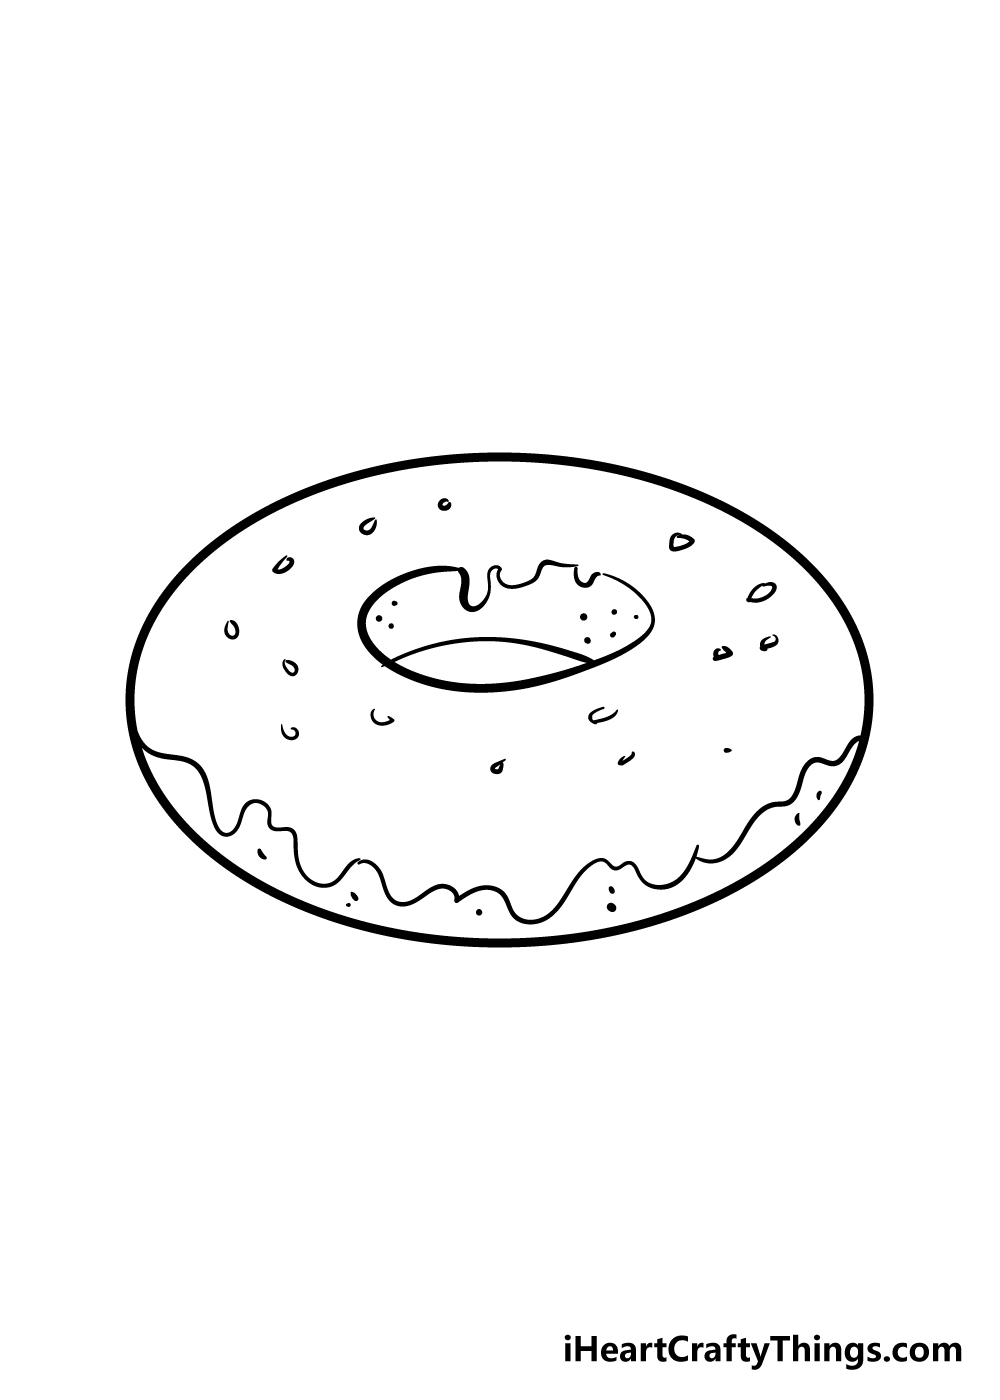 donut drawing step 5